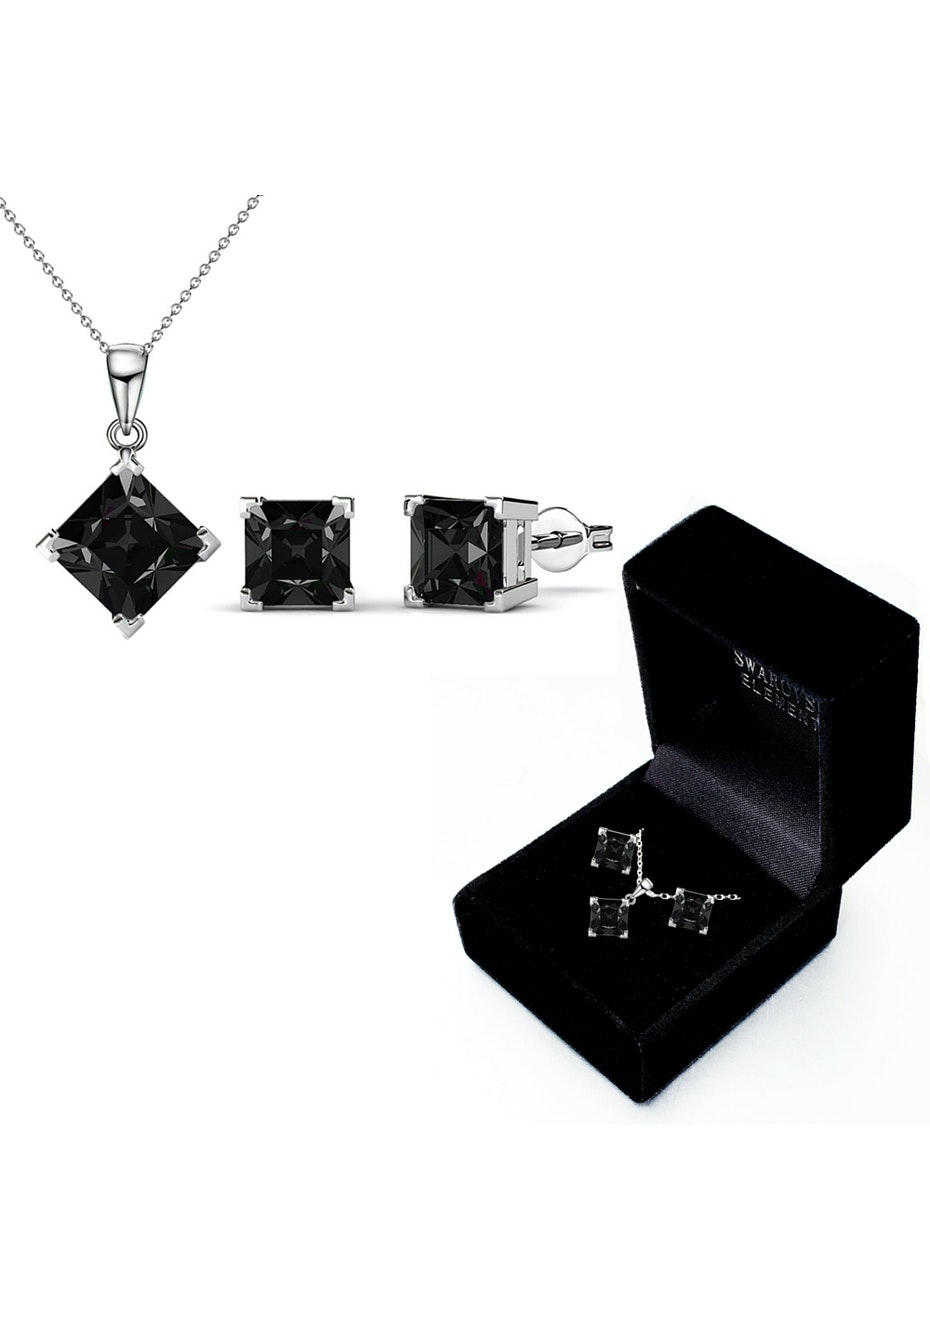 Boxed Matching Set Embellished with Crystals from Swarovski - Black